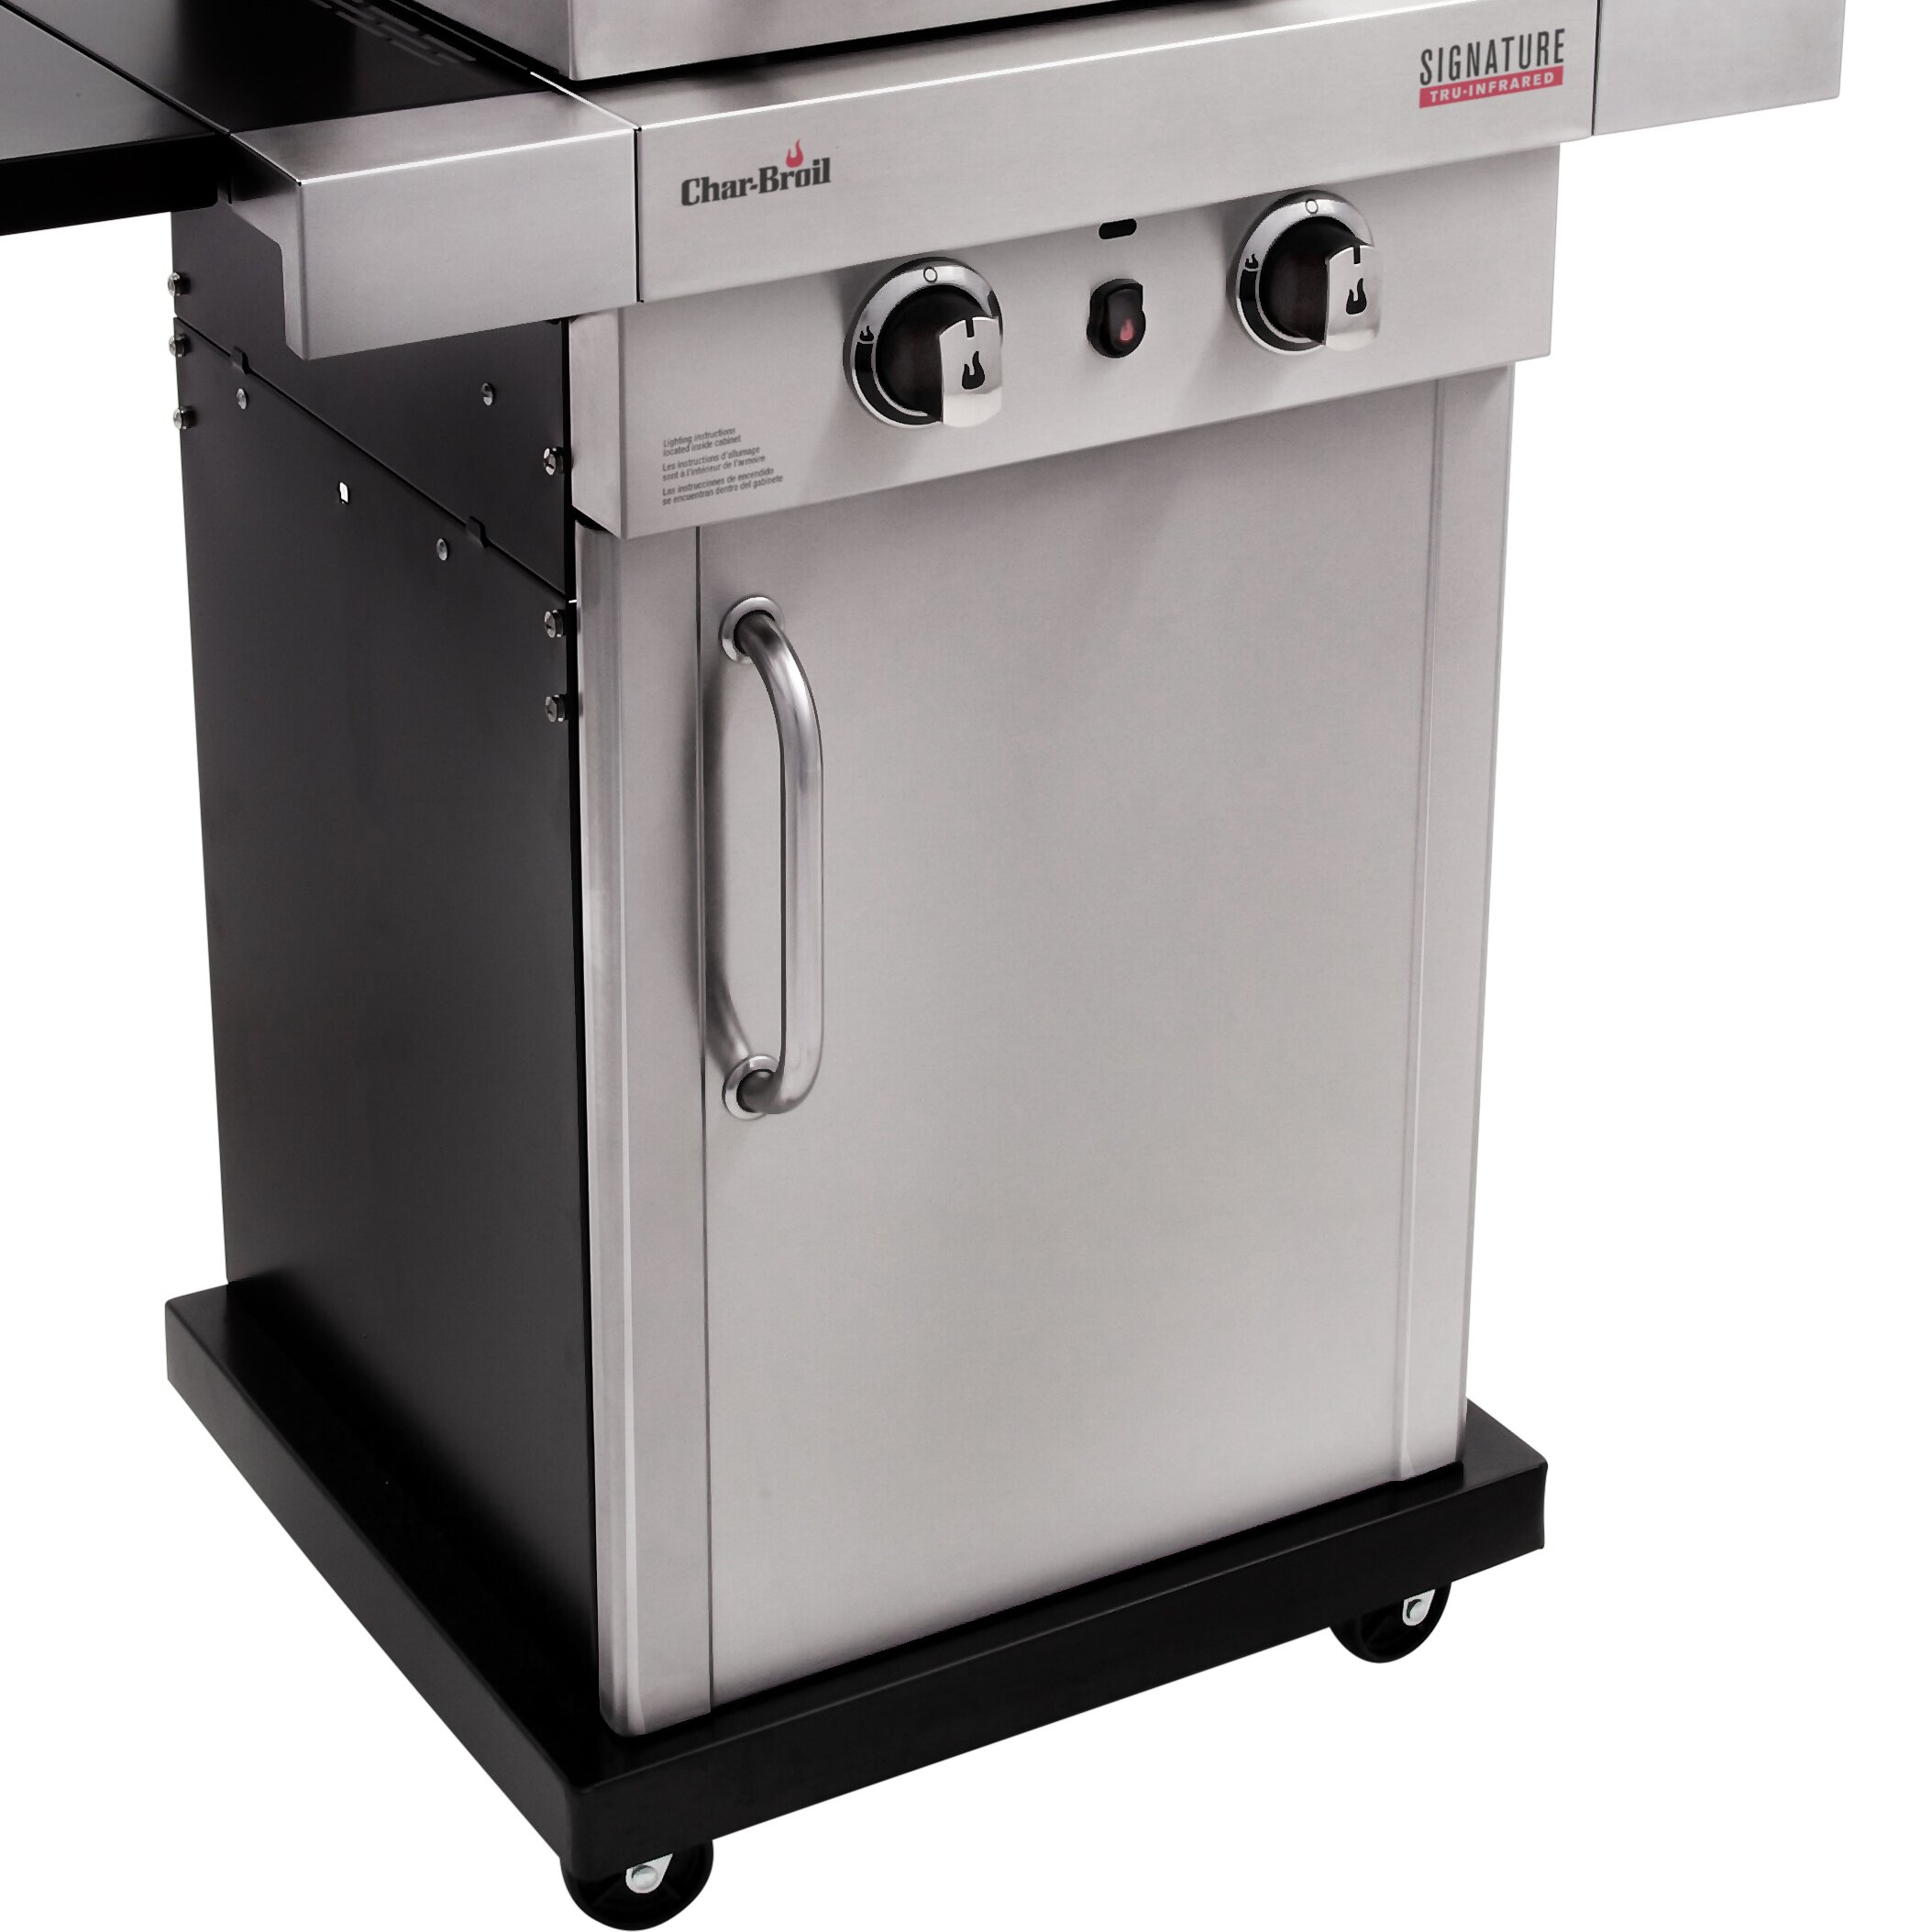 Grill Cabinet: CharBroil Signature InfraRed 2-Burner Propane Gas Grill